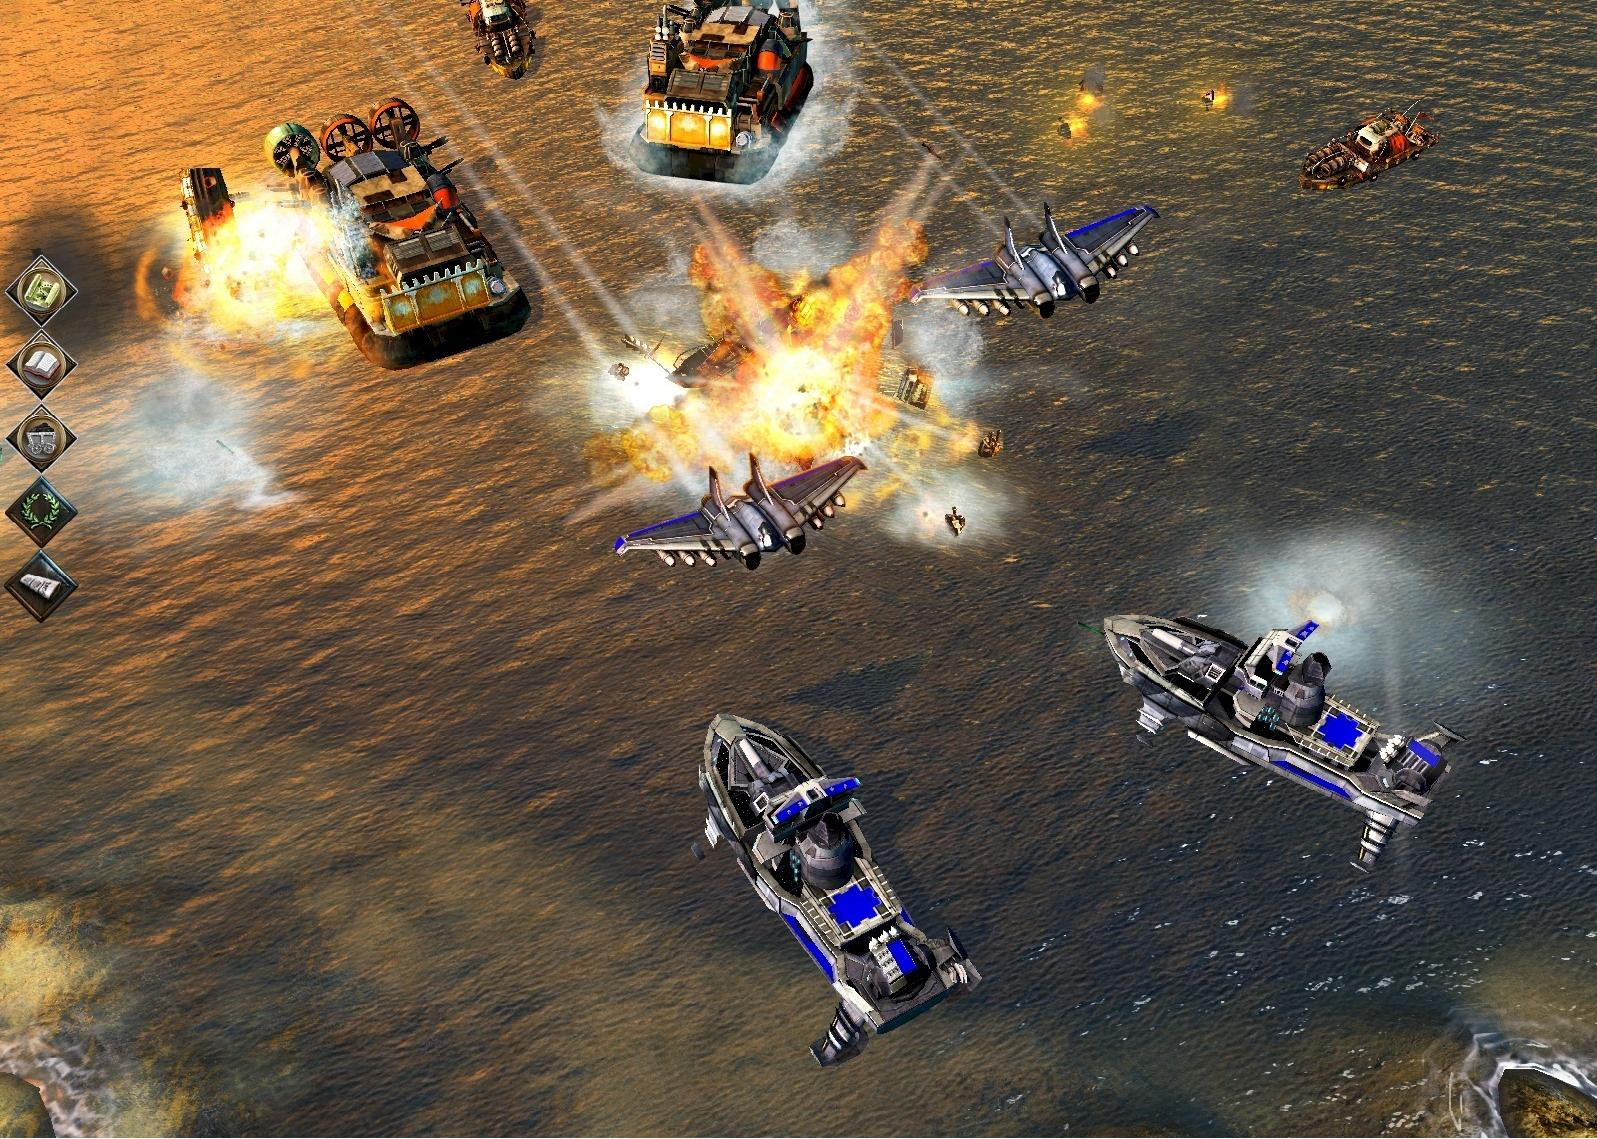 World Domination Game >> Video / Trailer: Empire Earth III Trailer | MegaGames